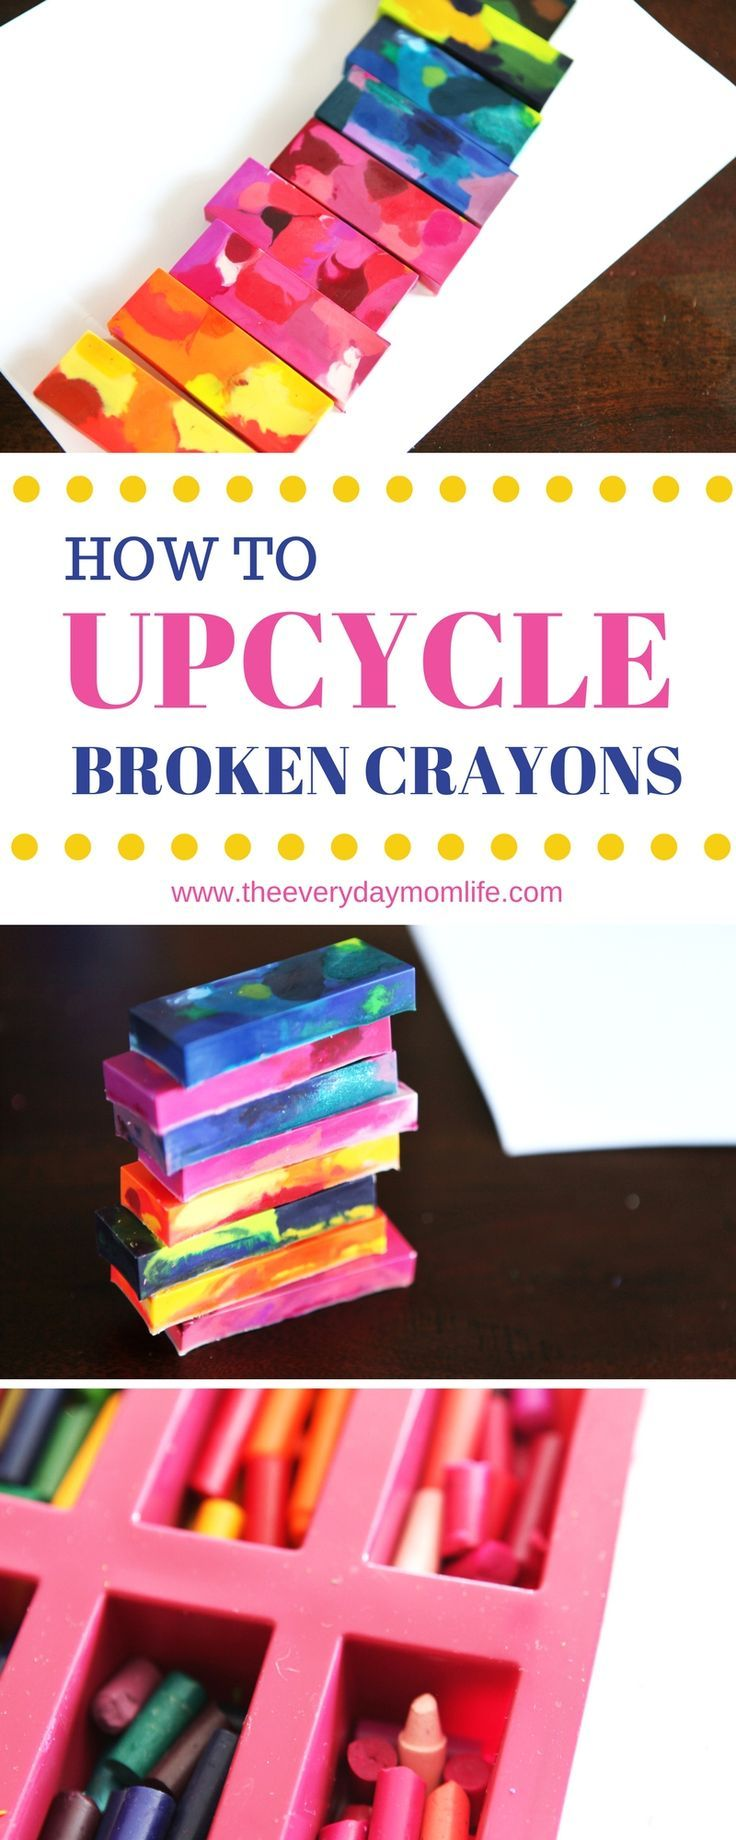 How to upcycle broken crayons in 5 easy steps. Crafts for moms and kids.